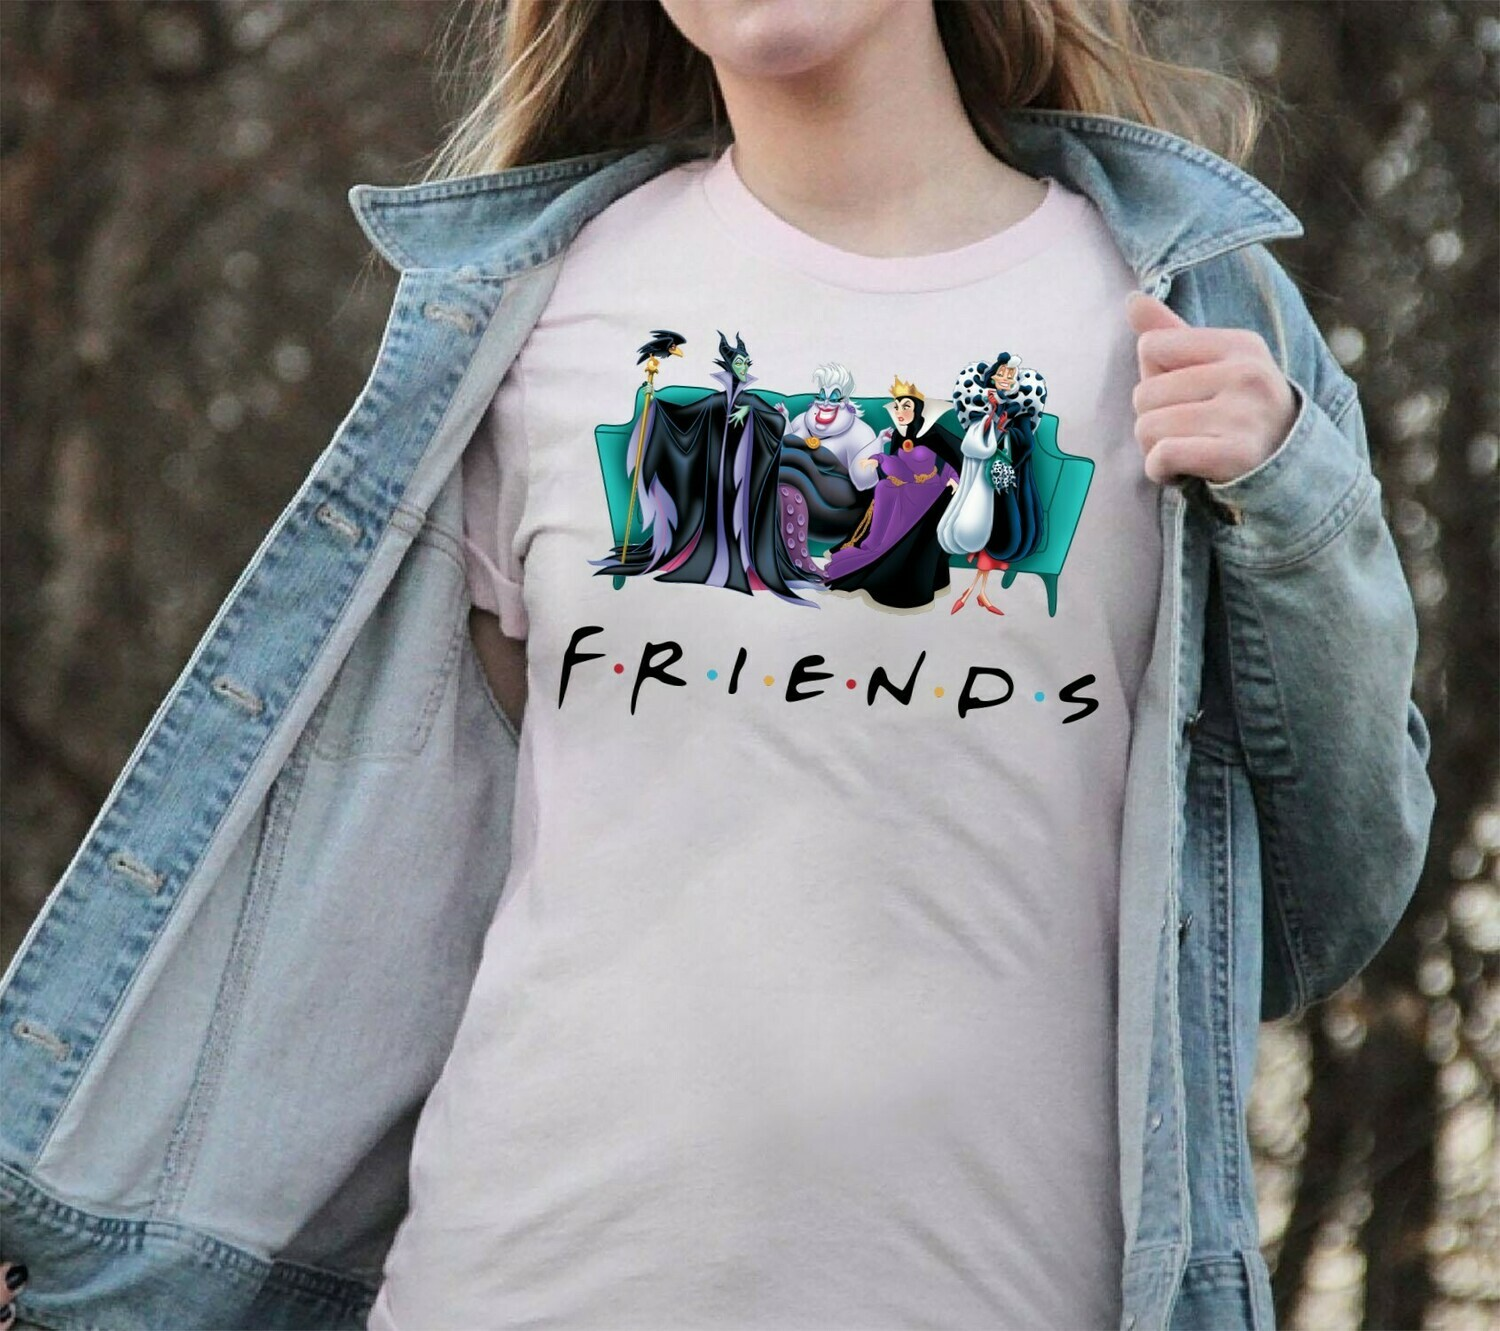 Friends Maleficent Evil Queen Ursula Cruella De Vil Disney Villains Bad Girls Have More Fun Walt Disney World Park Family Vacation T Shirt Long Sleeve Sweatshirt Hoodie Jolly Family Gifts